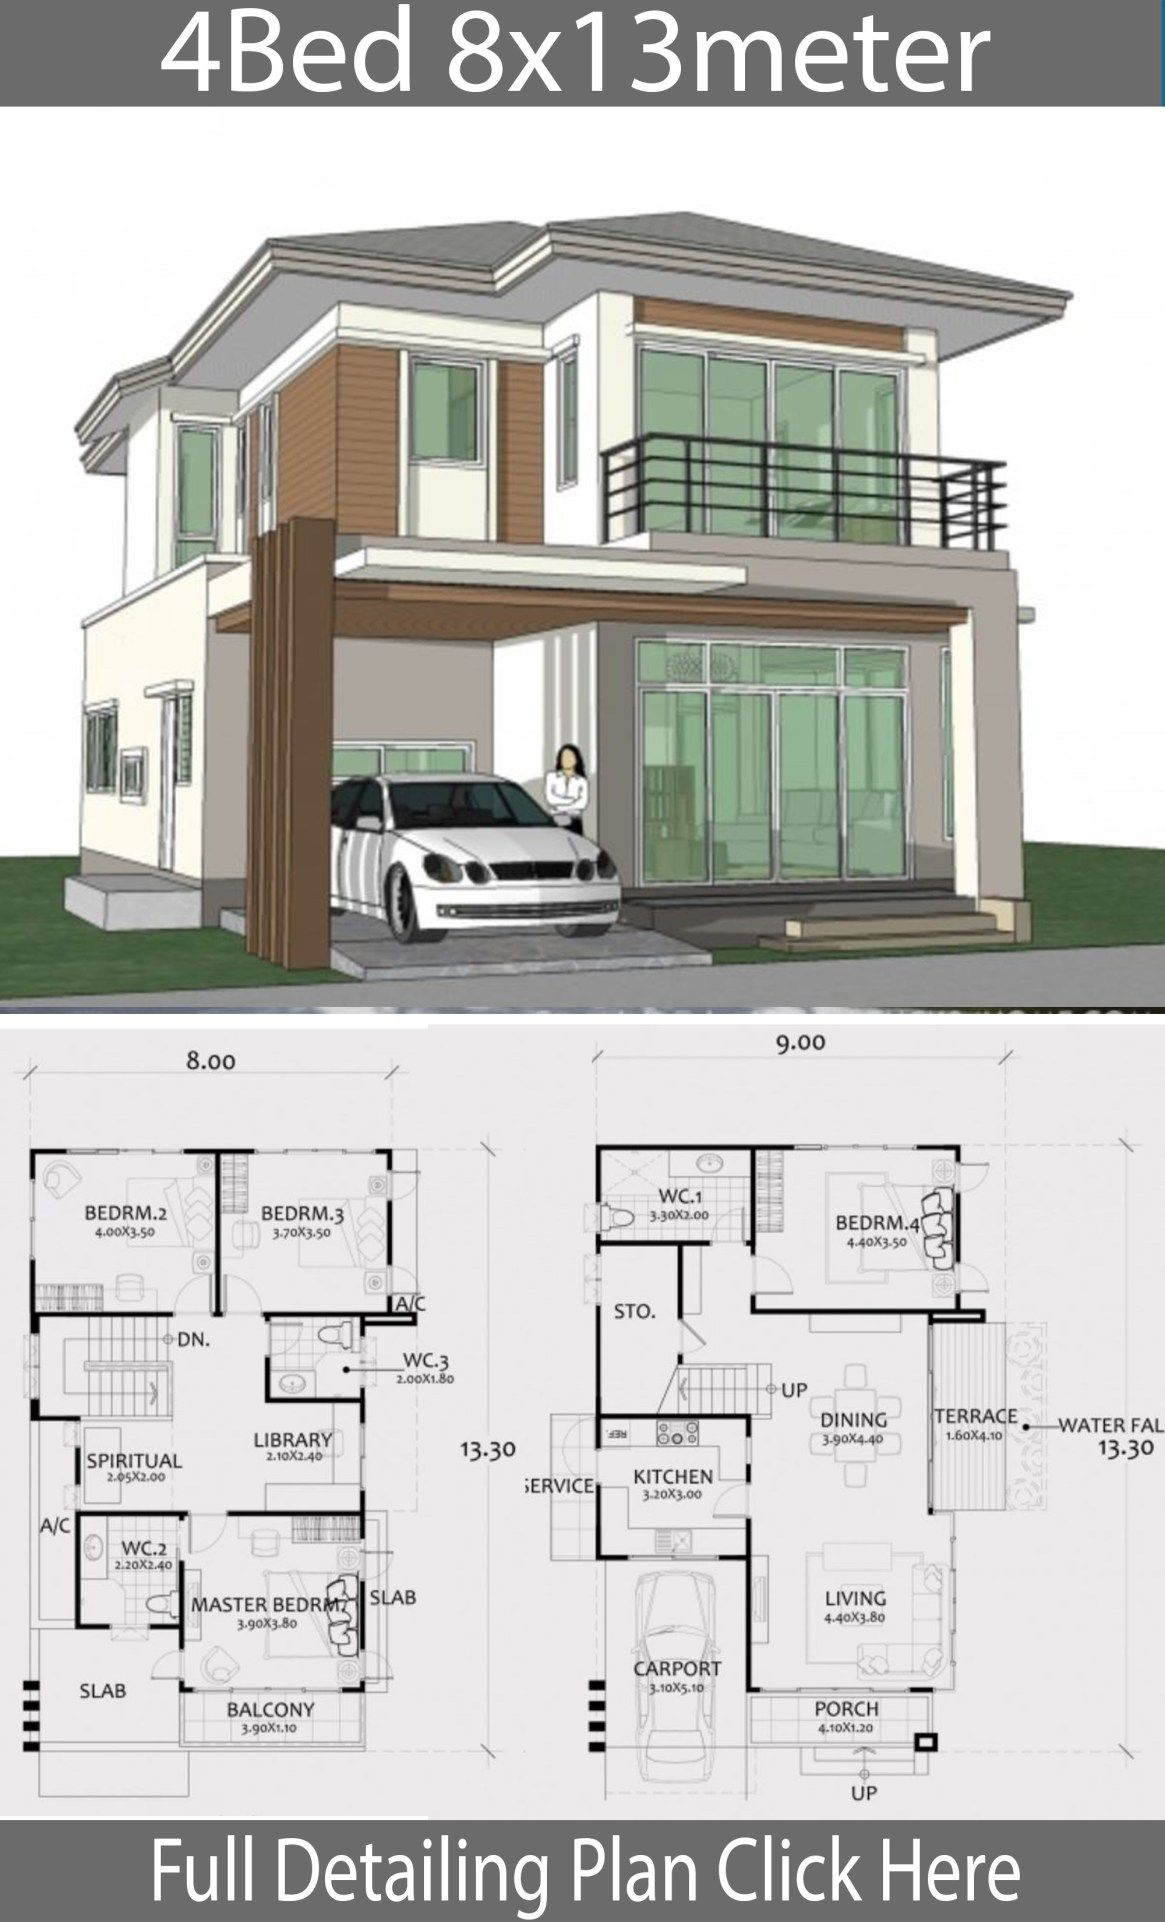 Home Design Plan 8x13m With 4 Bedrooms Home Design With Plansearch Model House Plan Duplex House Plans Beautiful House Plans